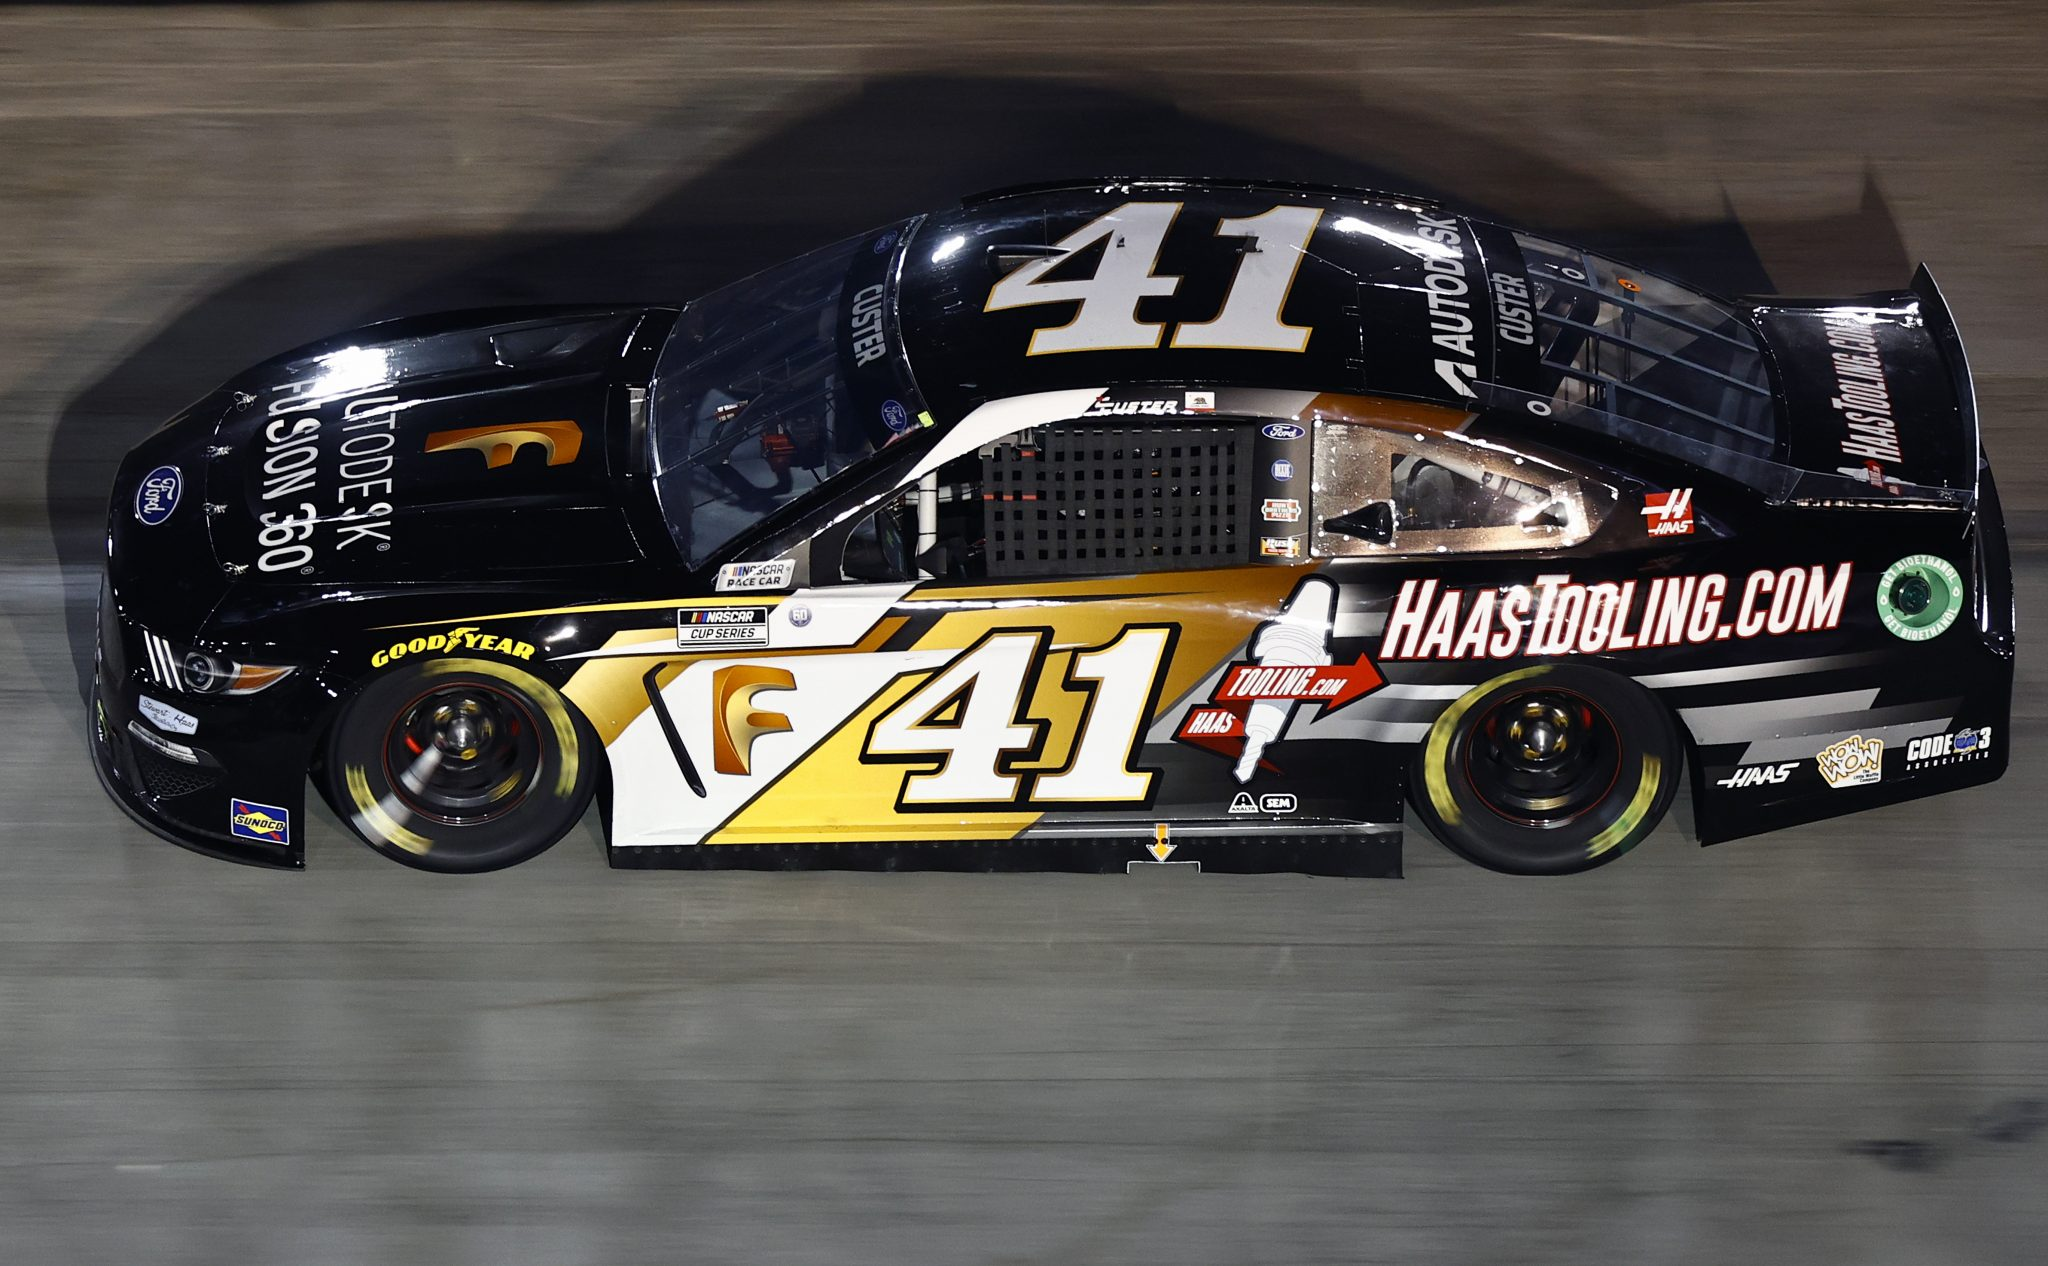 BRISTOL, TENNESSEE - SEPTEMBER 18: Cole Custer, driver of the #41 Autodesk/HaasTooling.com Ford, drives during the NASCAR Cup Series Bass Pro Shops Night Race at Bristol Motor Speedway on September 18, 2021 in Bristol, Tennessee. (Photo by Jared C. Tilton/Getty Images) | Getty Images